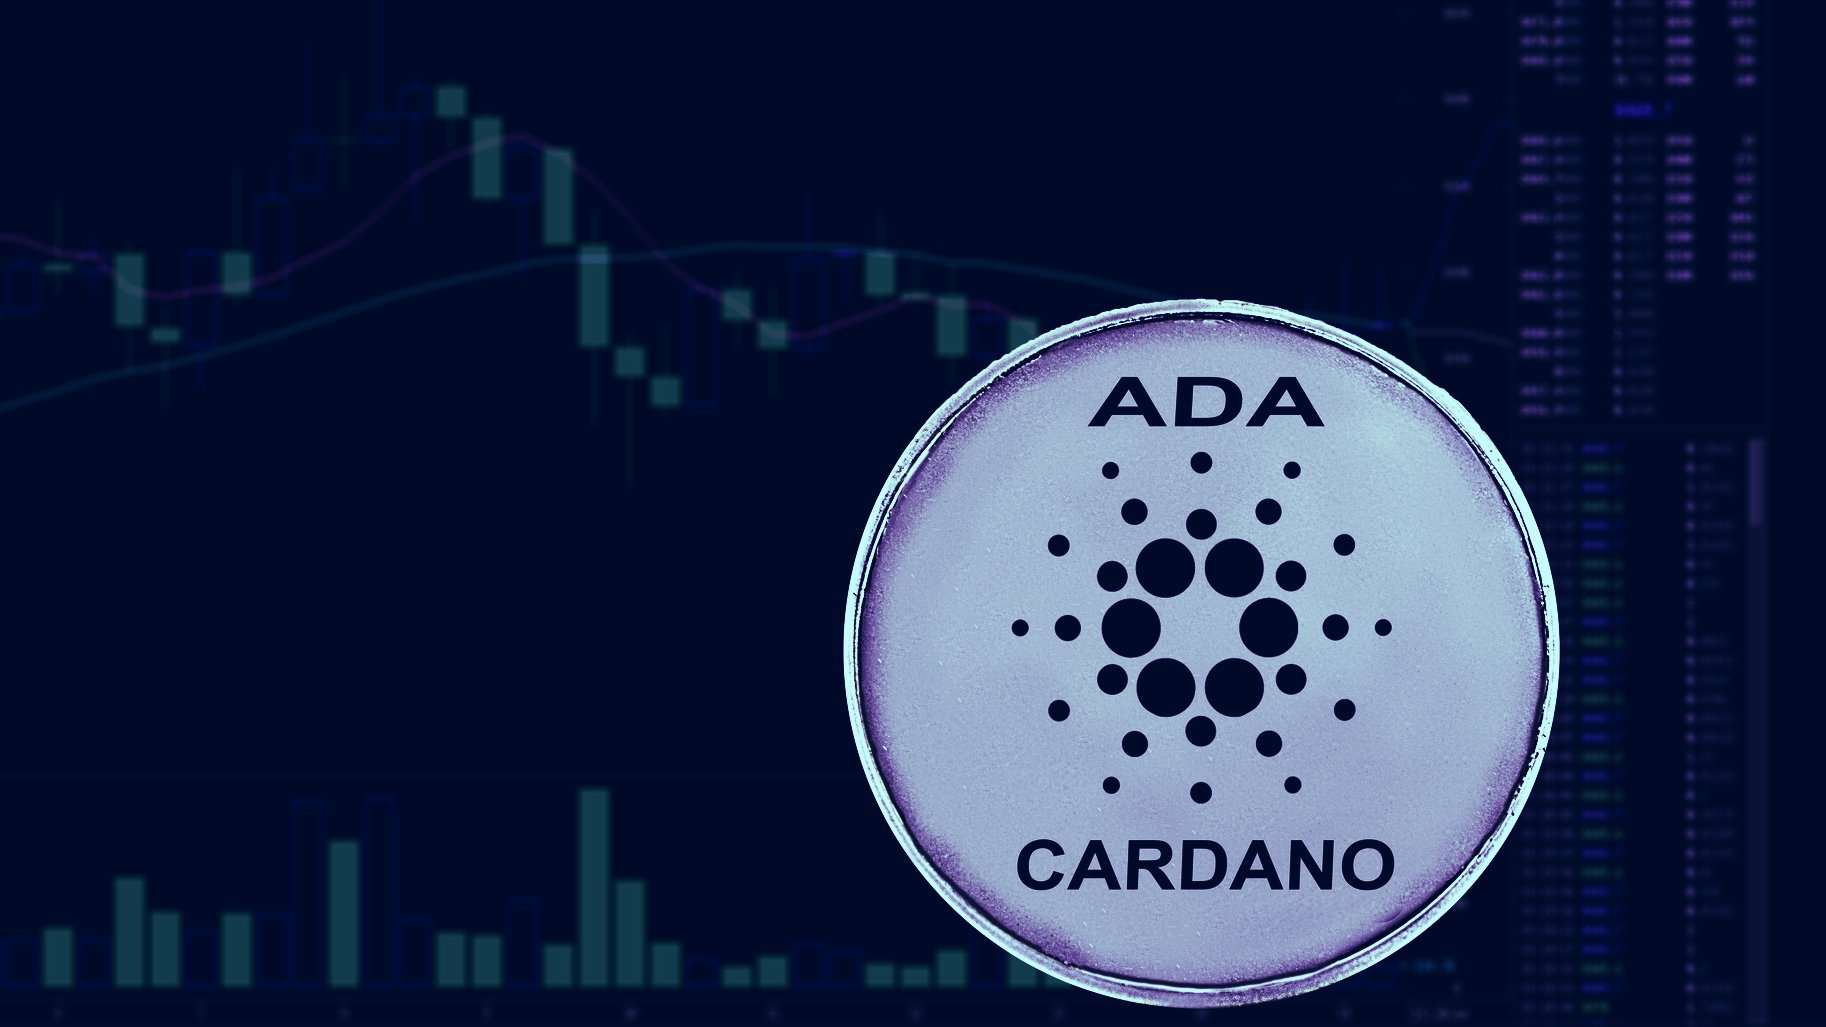 Picture of a Cardano coin in front of a candlestick chart